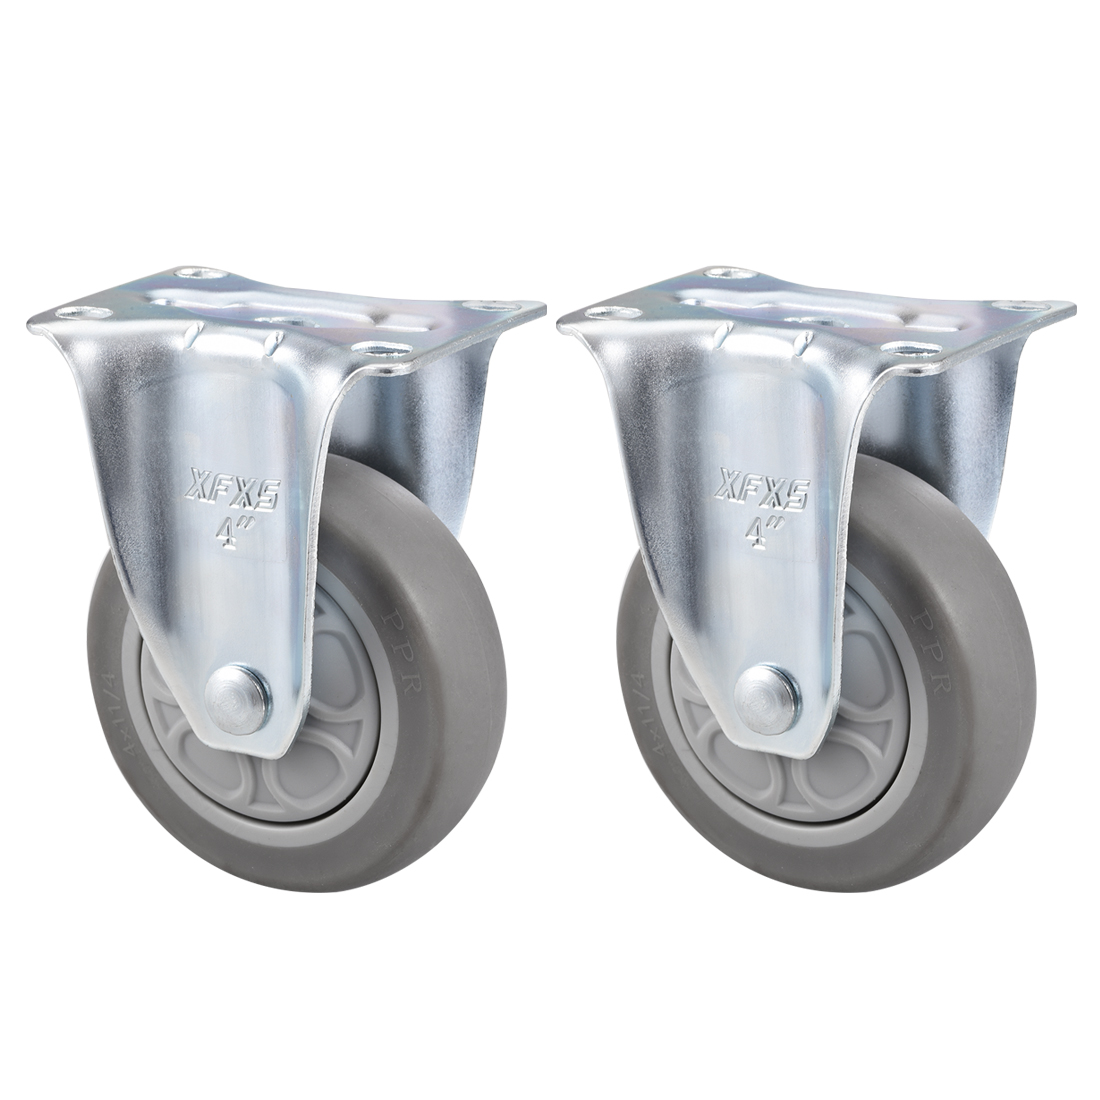 Fixed Caster Wheels 4inch TPR Caster Top Plate Mounted 286lb Capacity , 2pcs